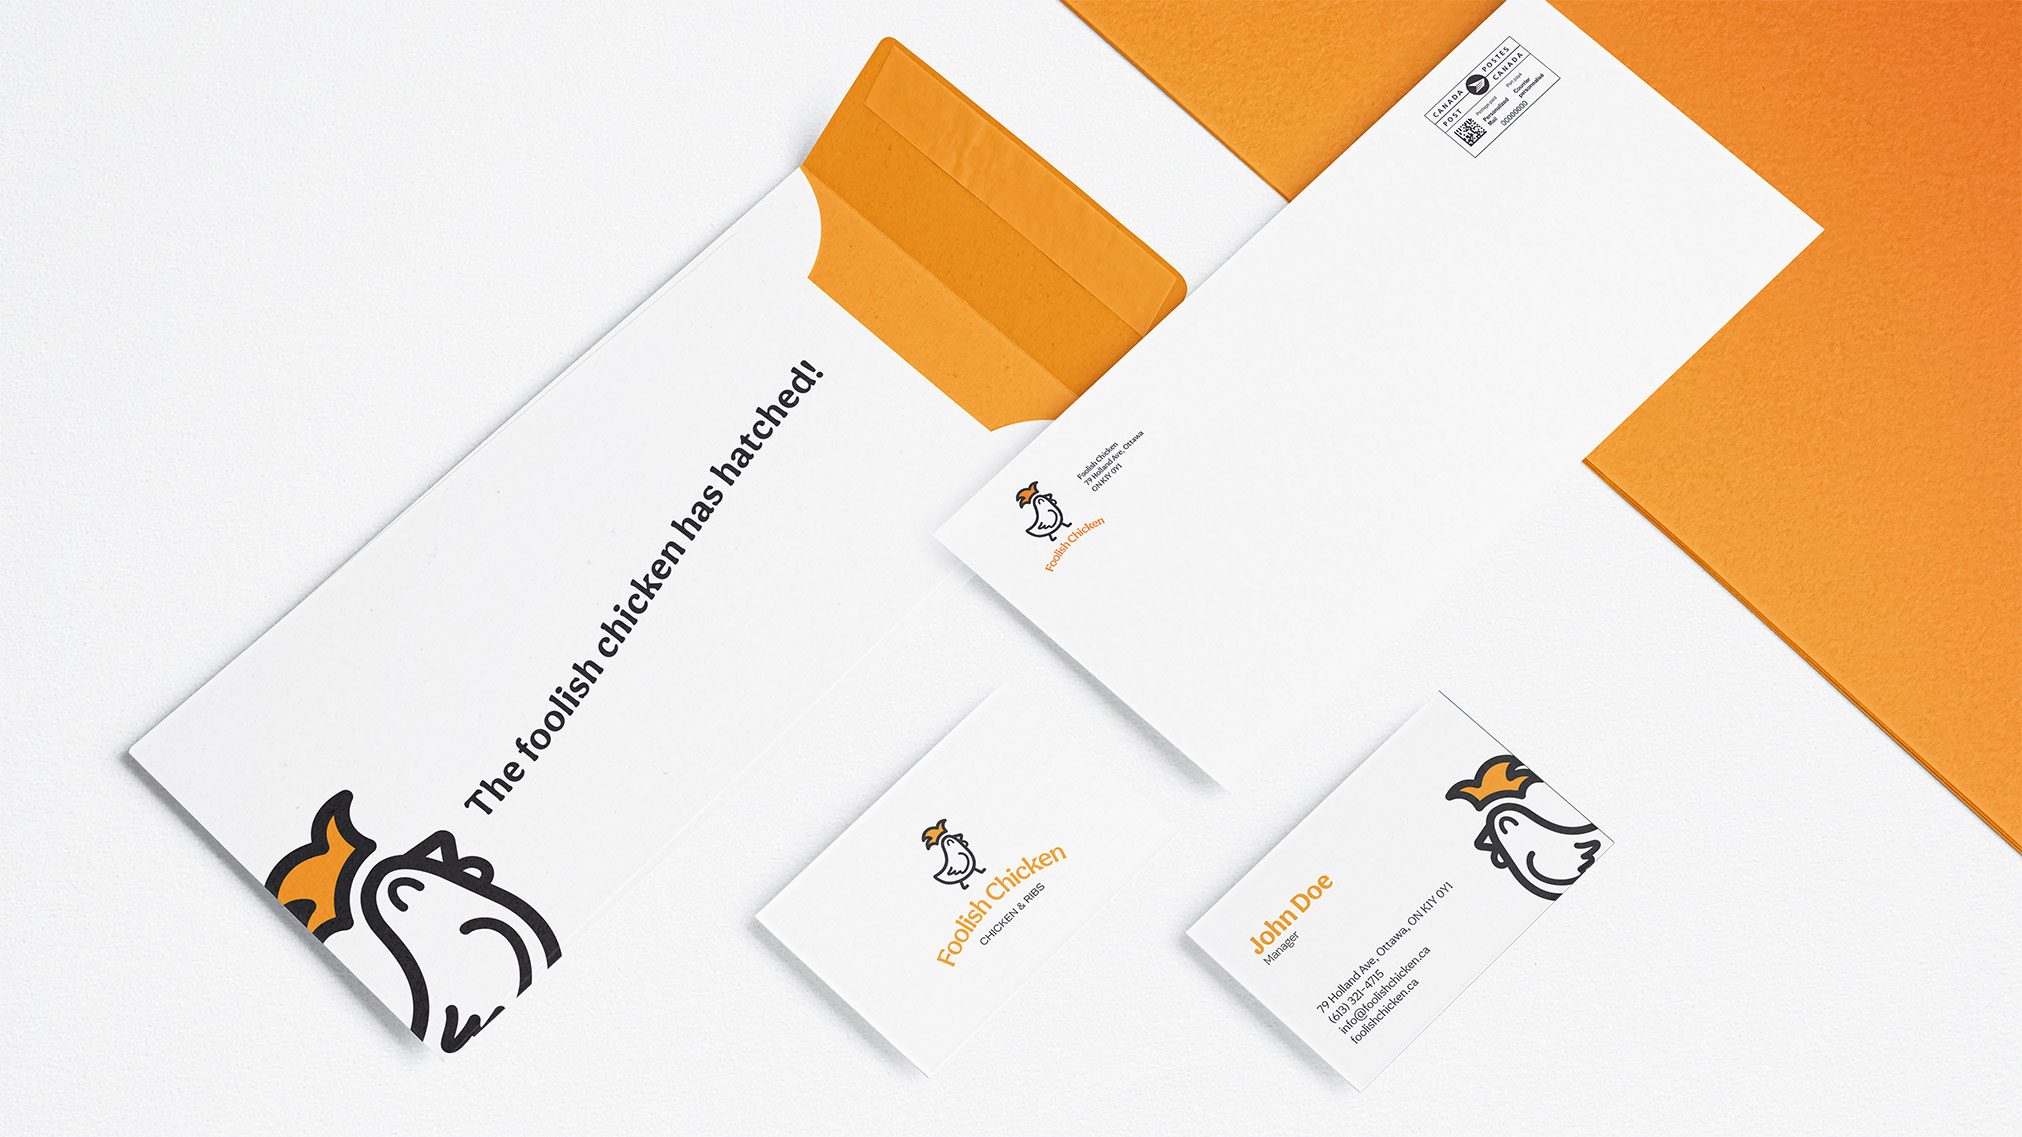 This rebranding project for Foolish Chicken restaurant is created to help their brand stand out and reach more audiences.